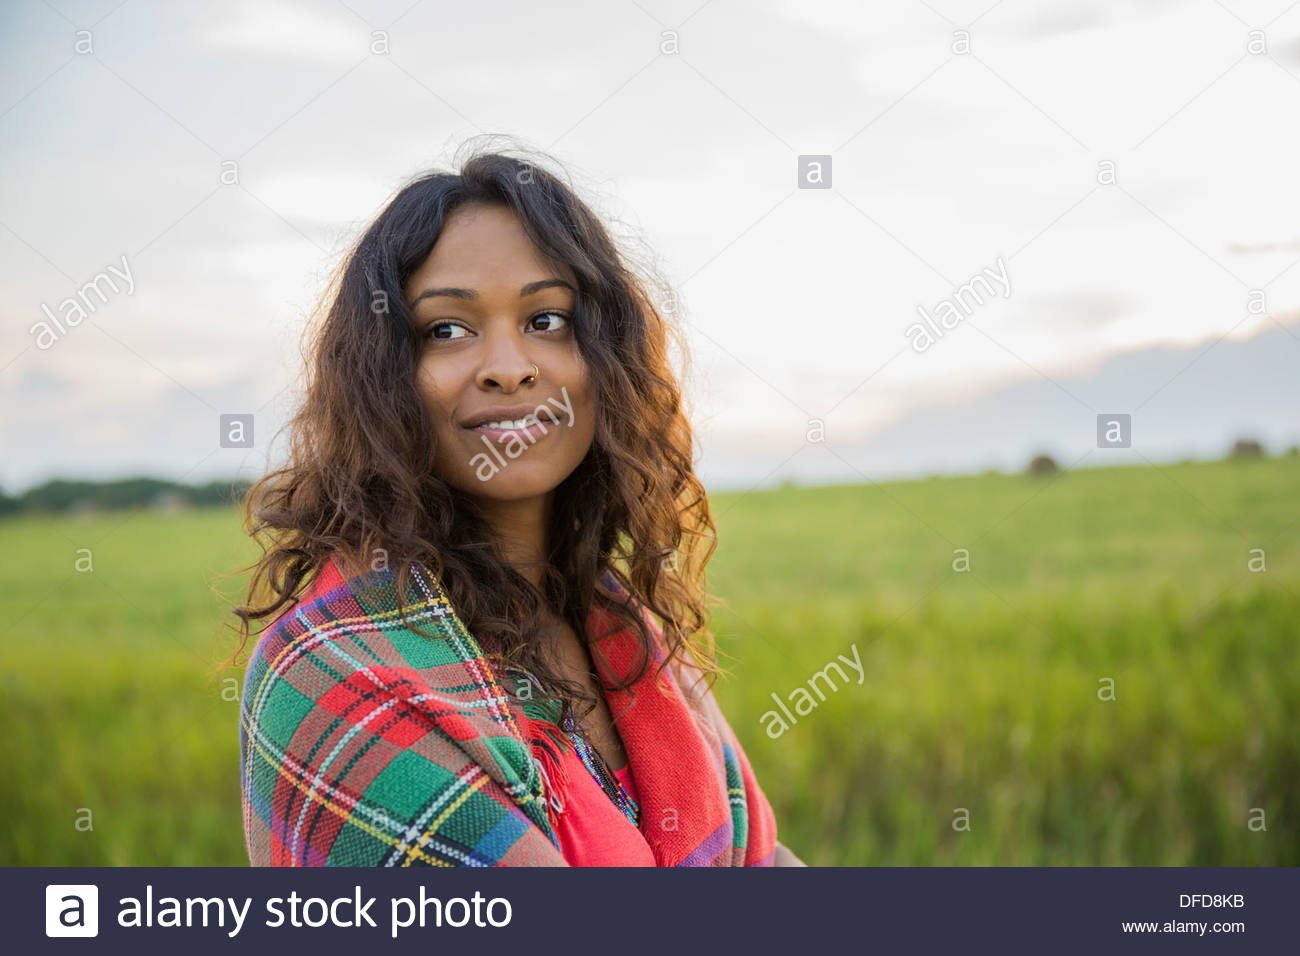 Smiling woman wrapped in blanket outdoors Photo Stock